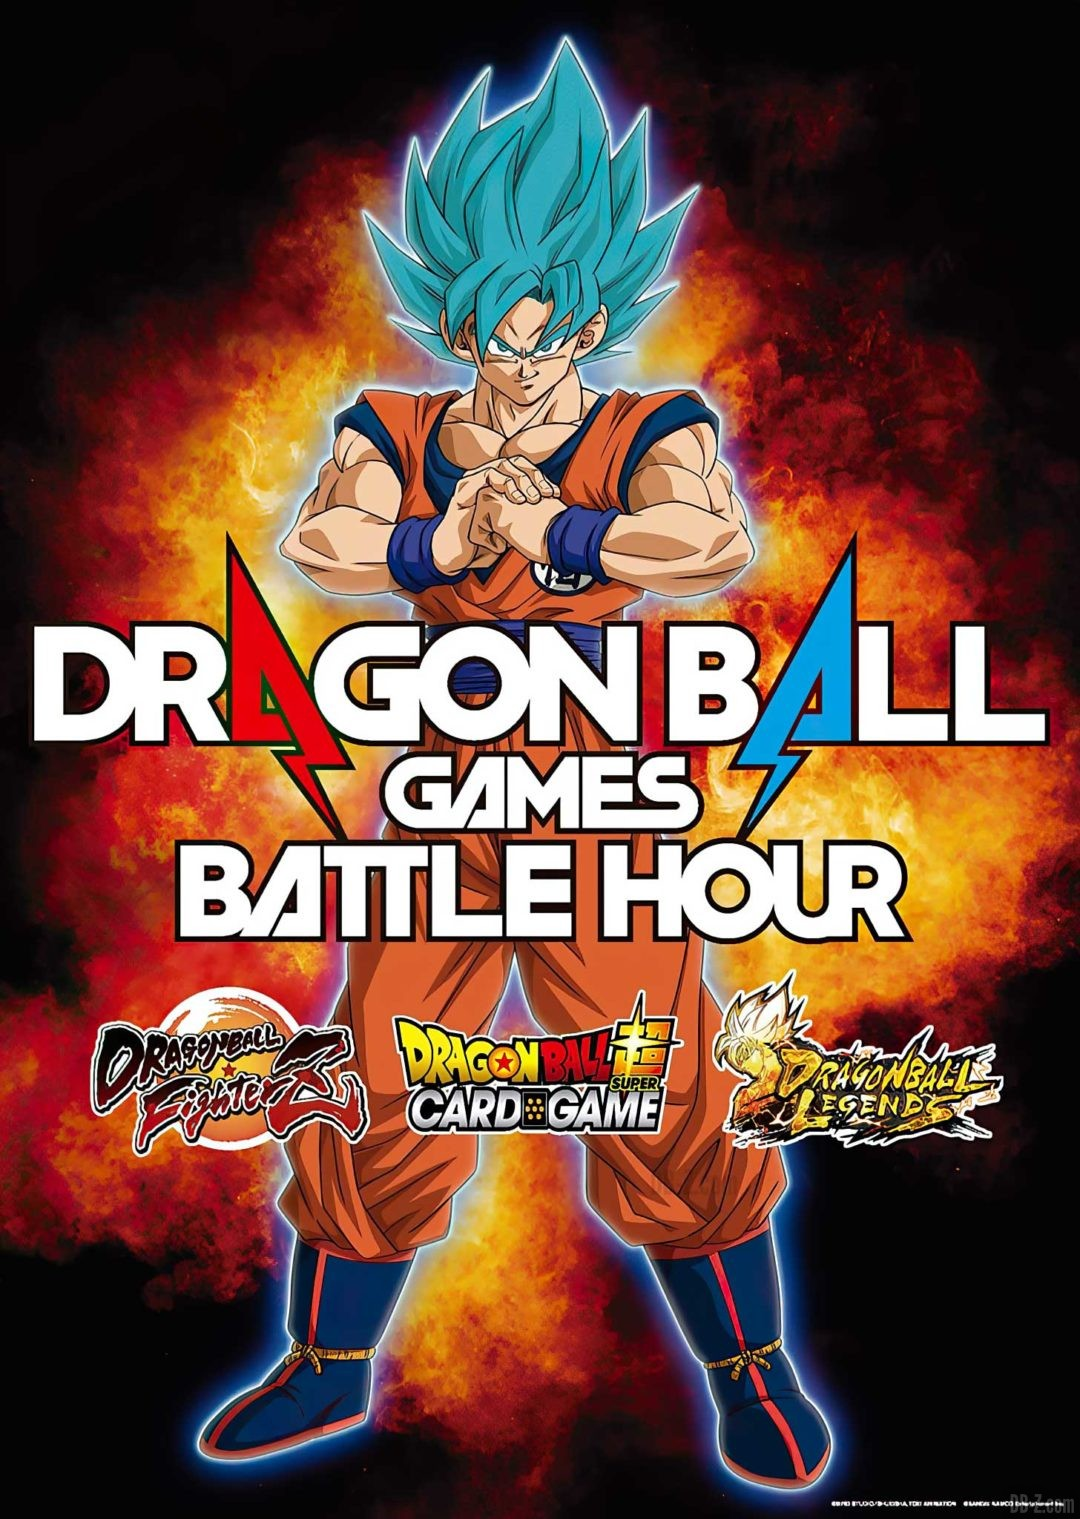 DRAGON-BALL-Games-Battle-Hour